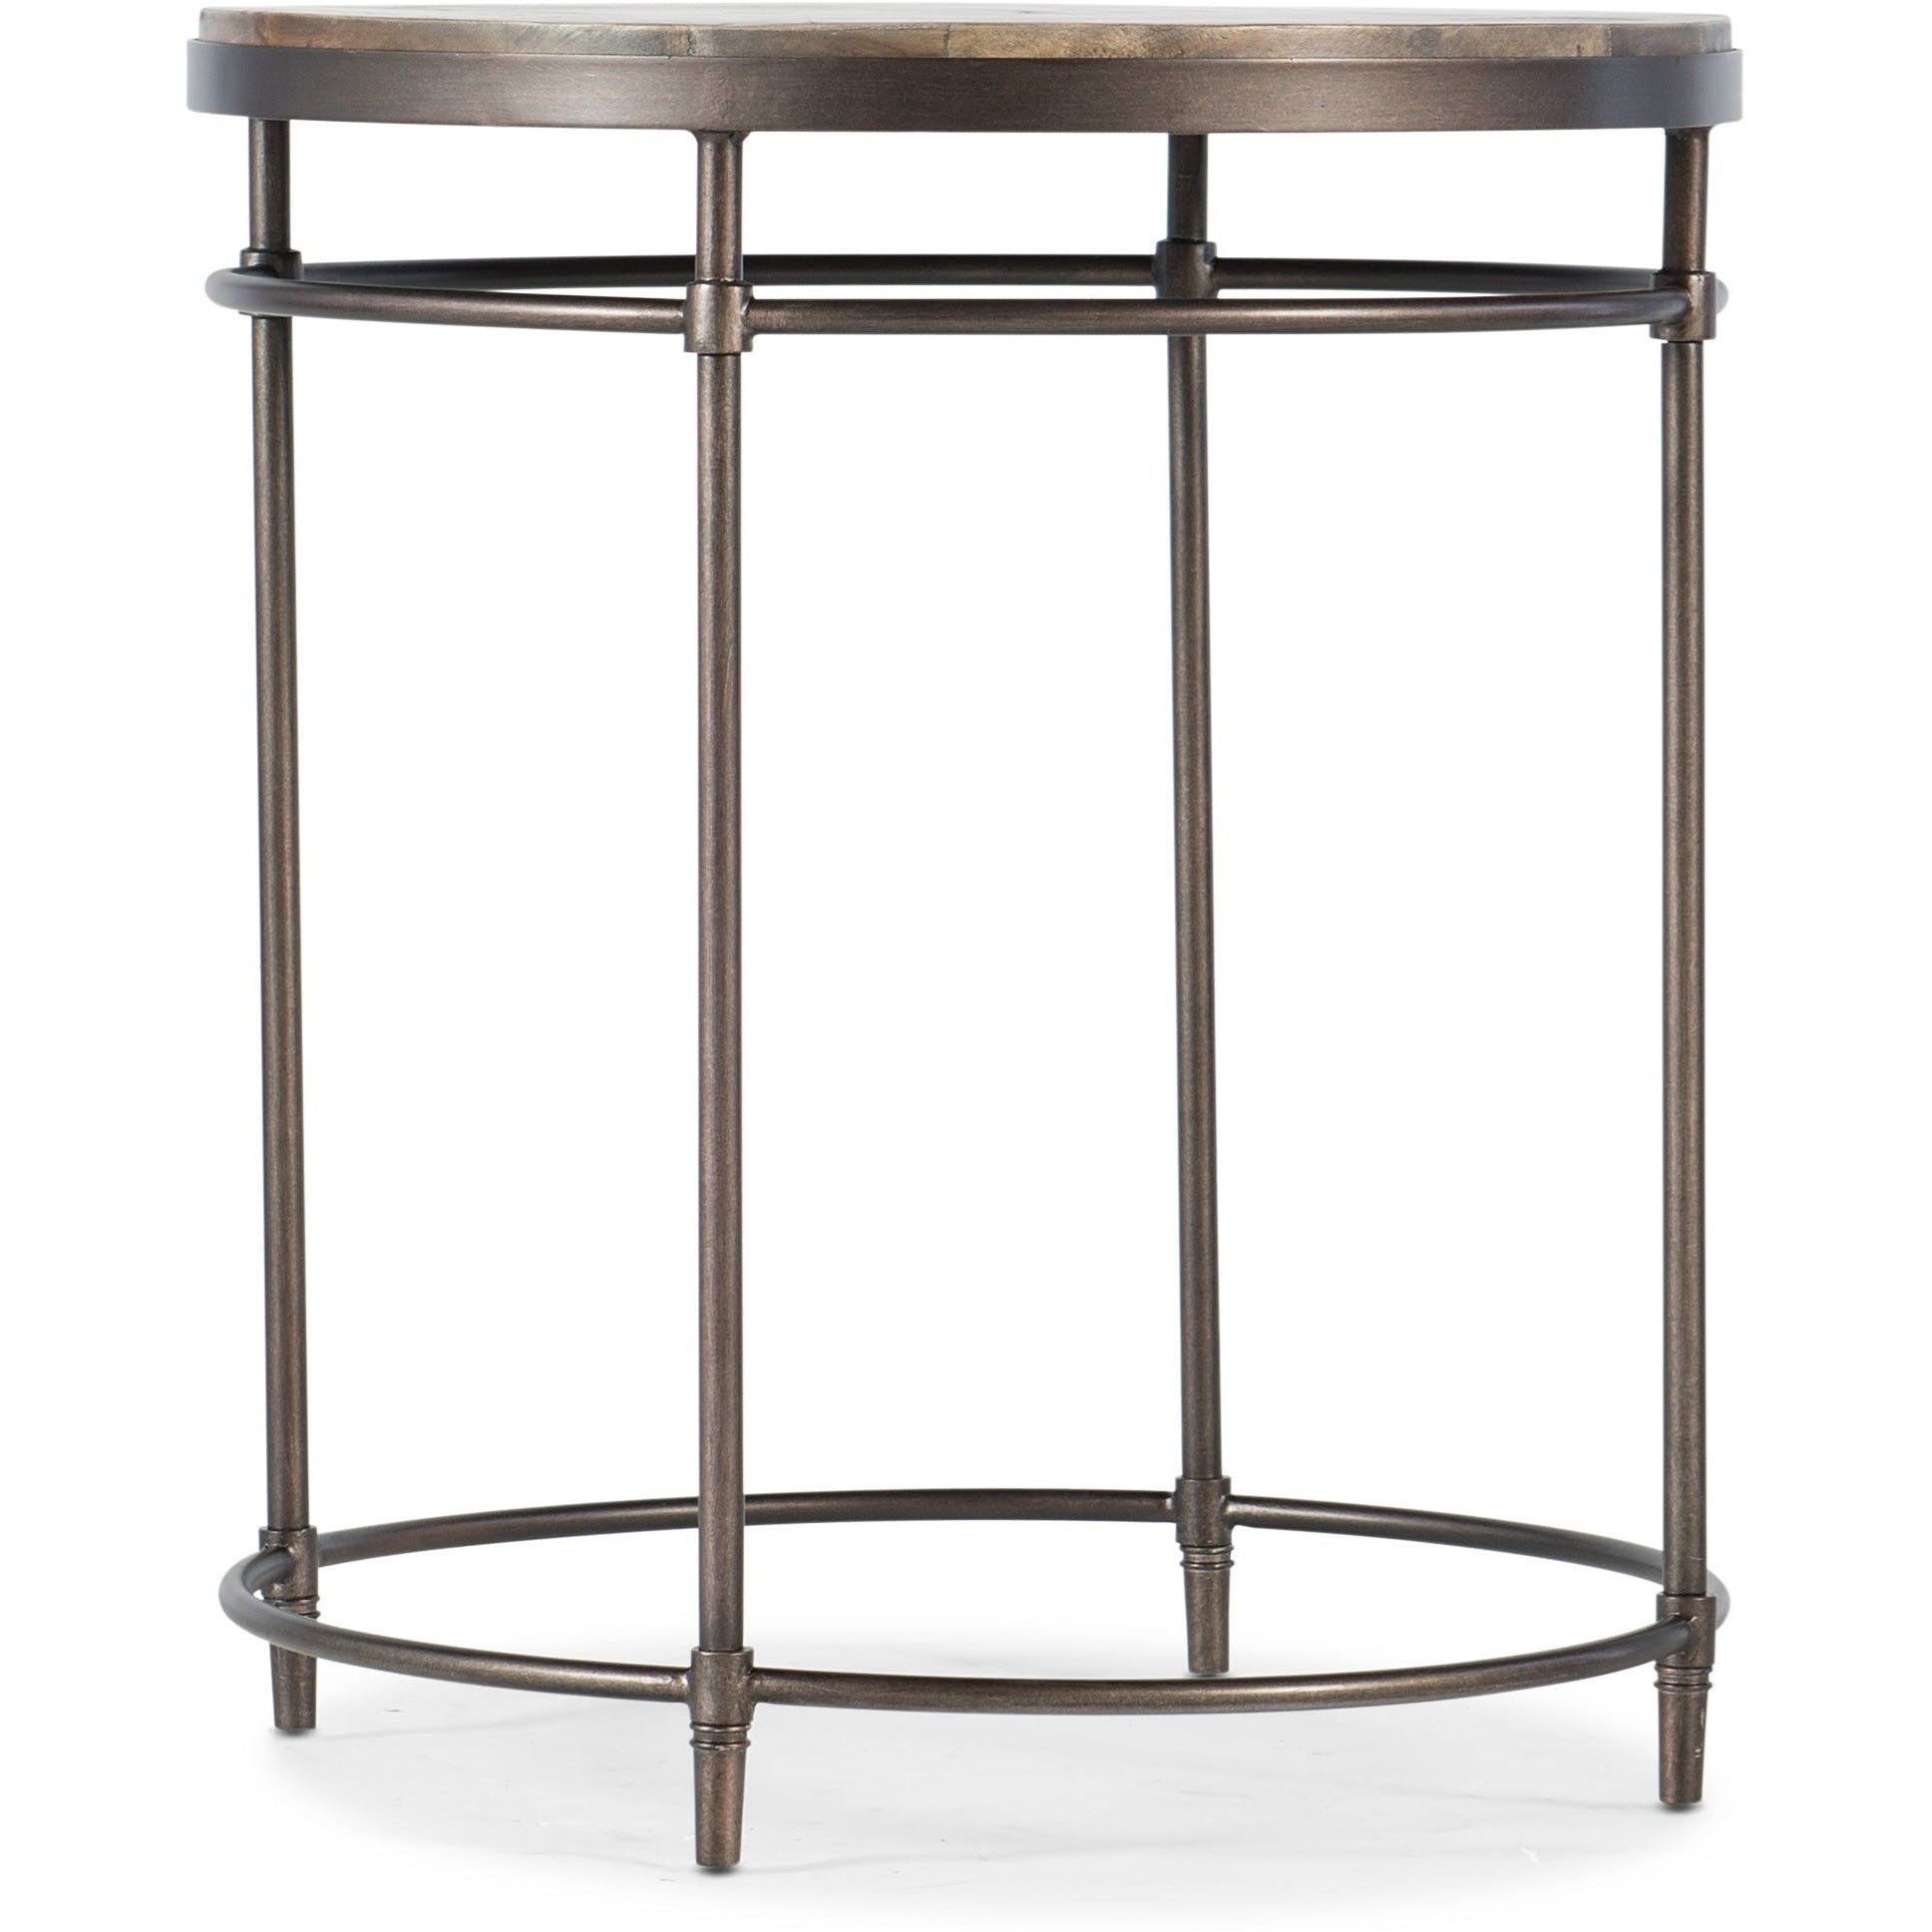 Saint Armand Round End Table by Hooker Furniture at Alison Craig Home Furnishings